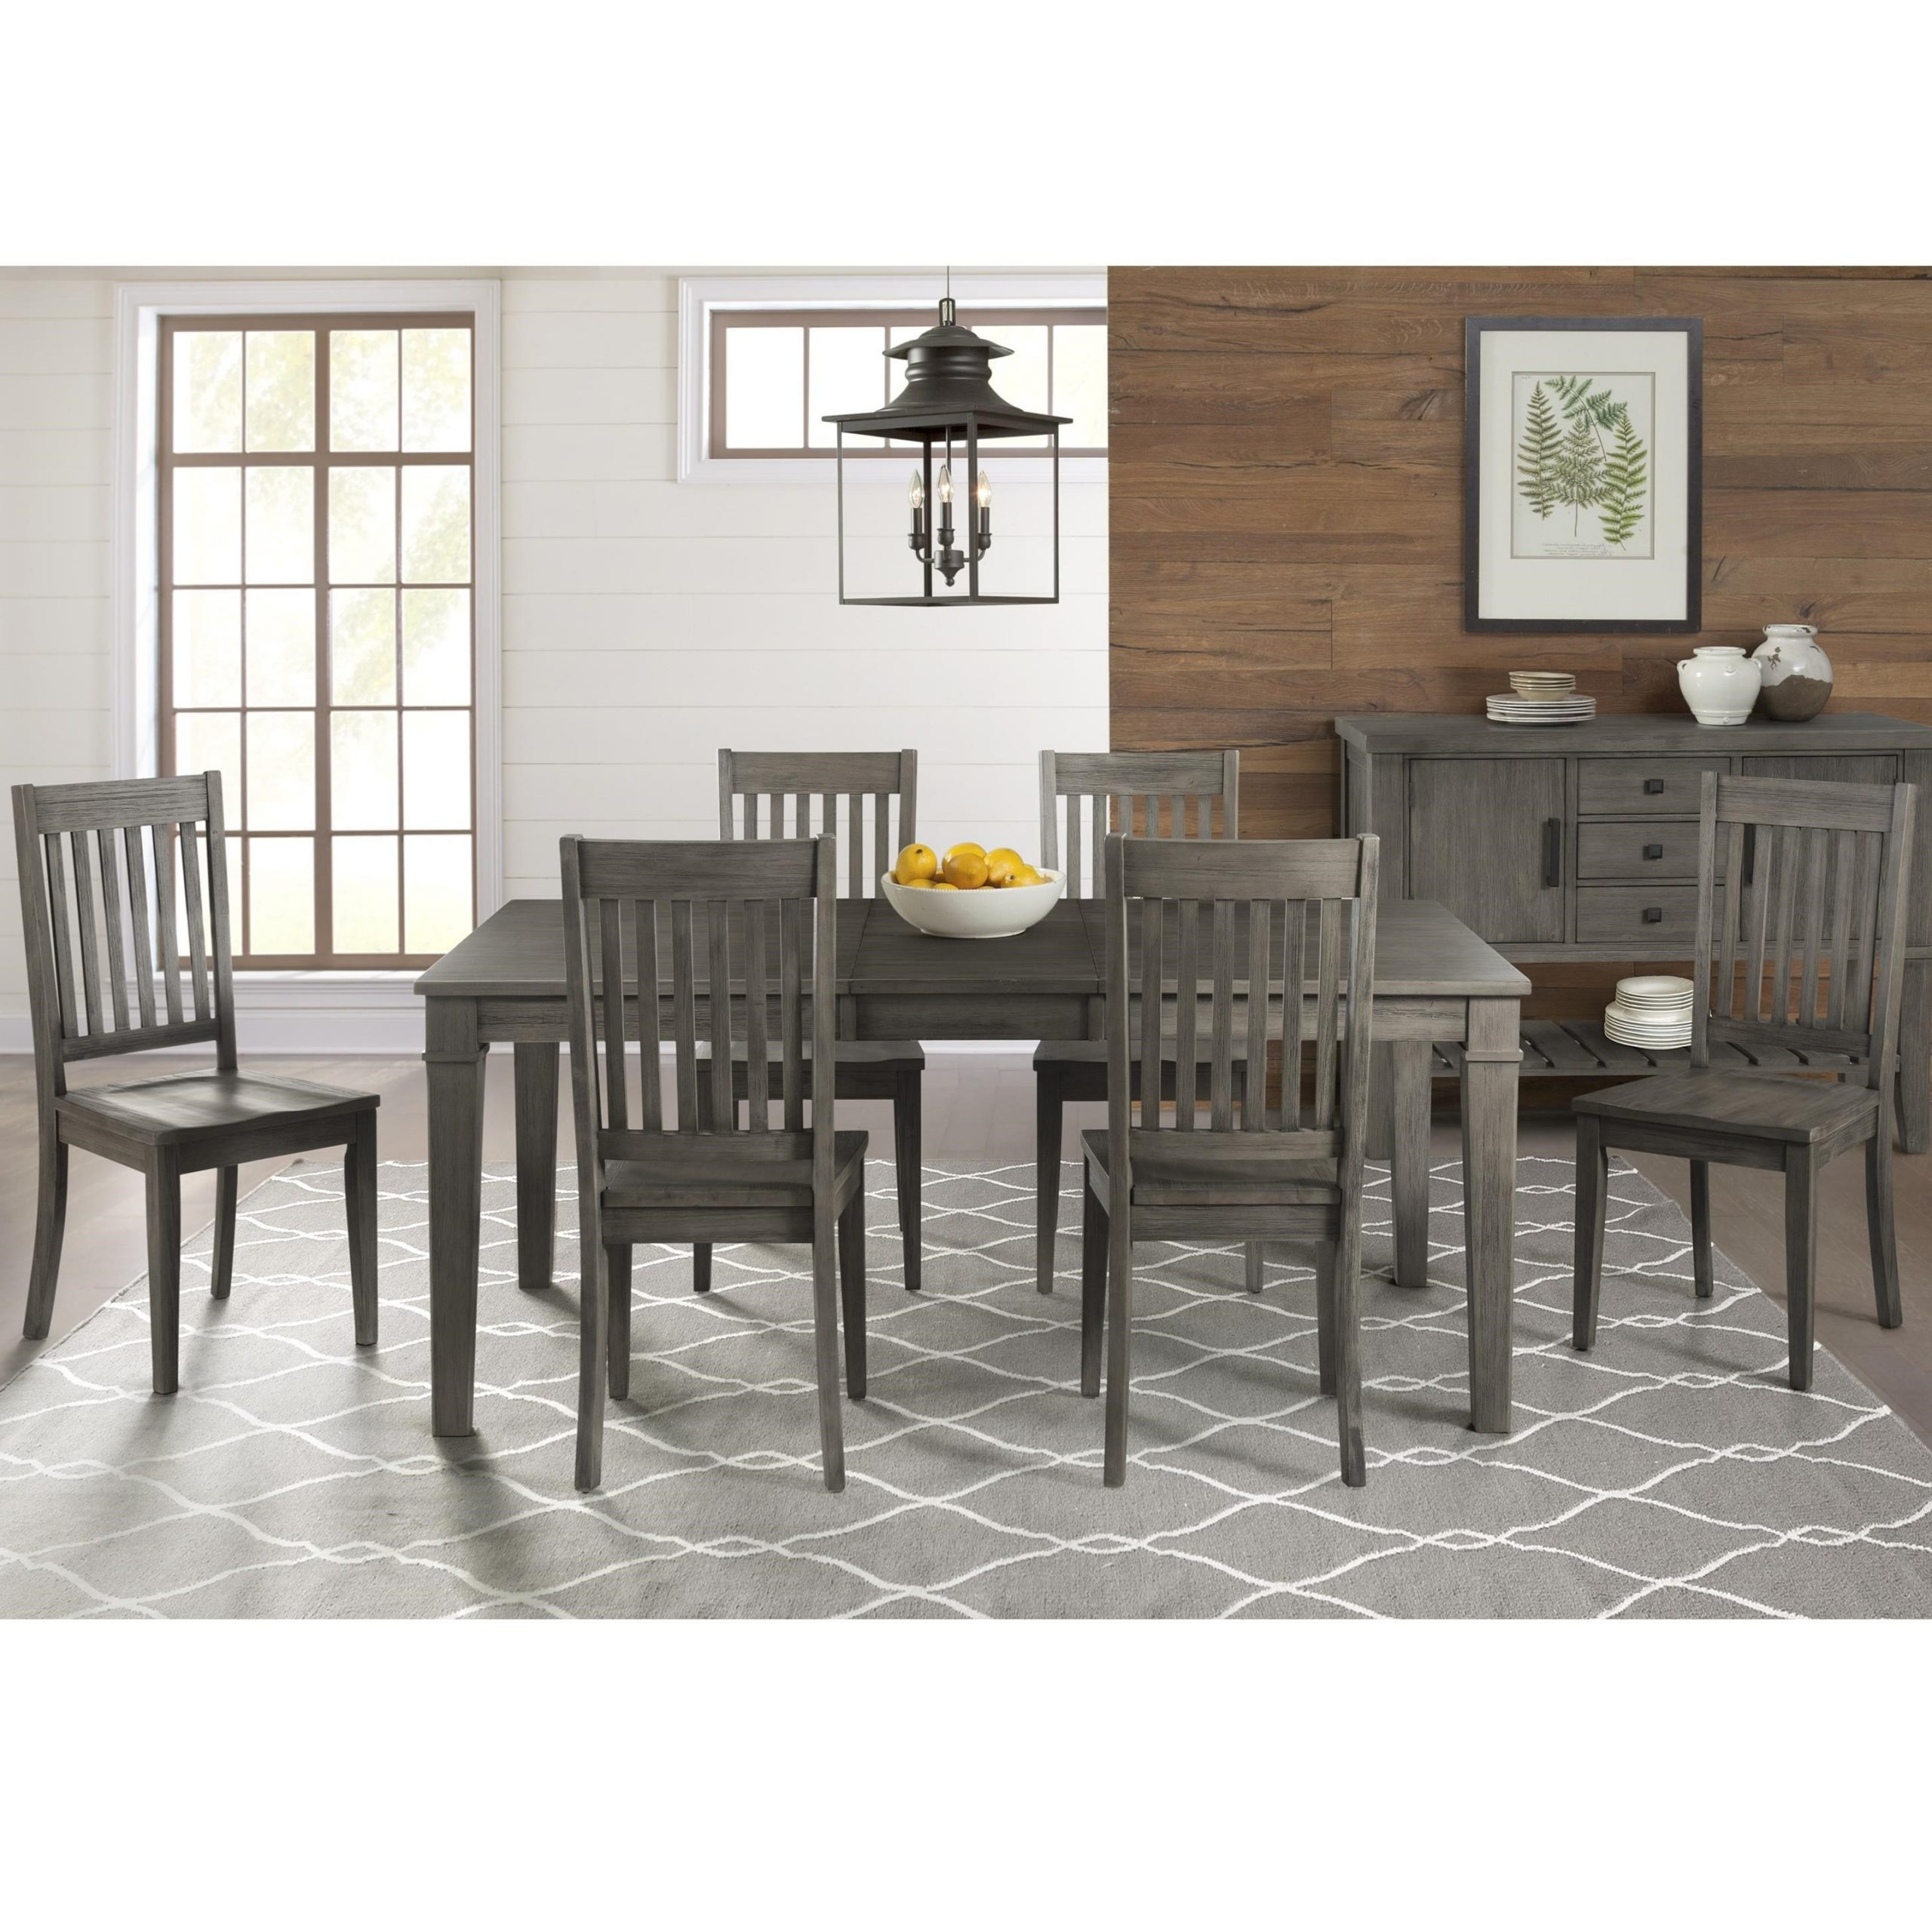 2017 Aamerica Huron 7 Piece Transitional Table And Slat Back Regarding Transitional 6 Seating Casual Dining Tables (View 1 of 30)